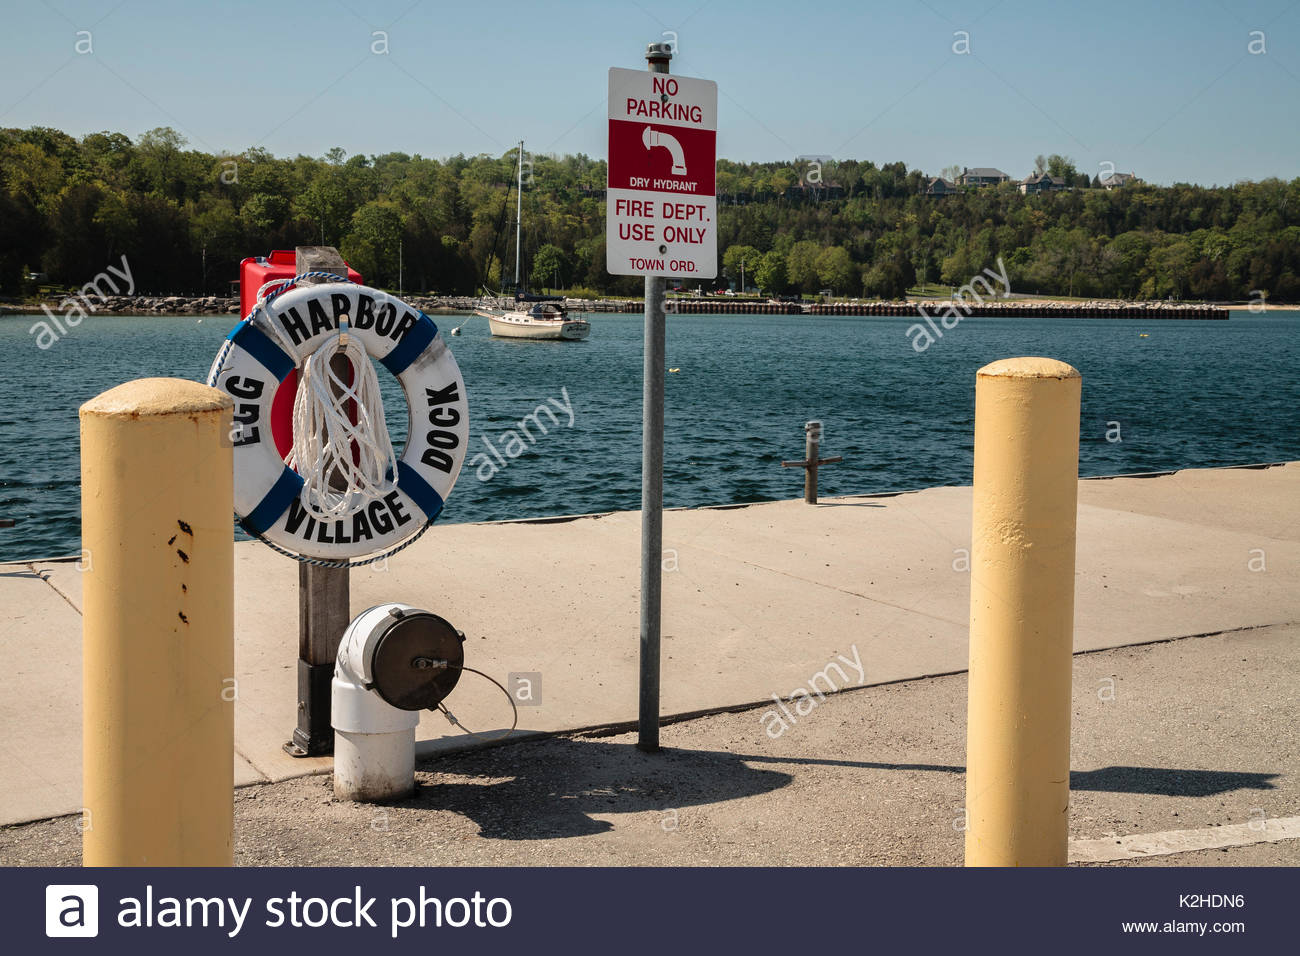 Life ring and fire water access at harbor, Egg Harbor, Wisconsin - Stock Image